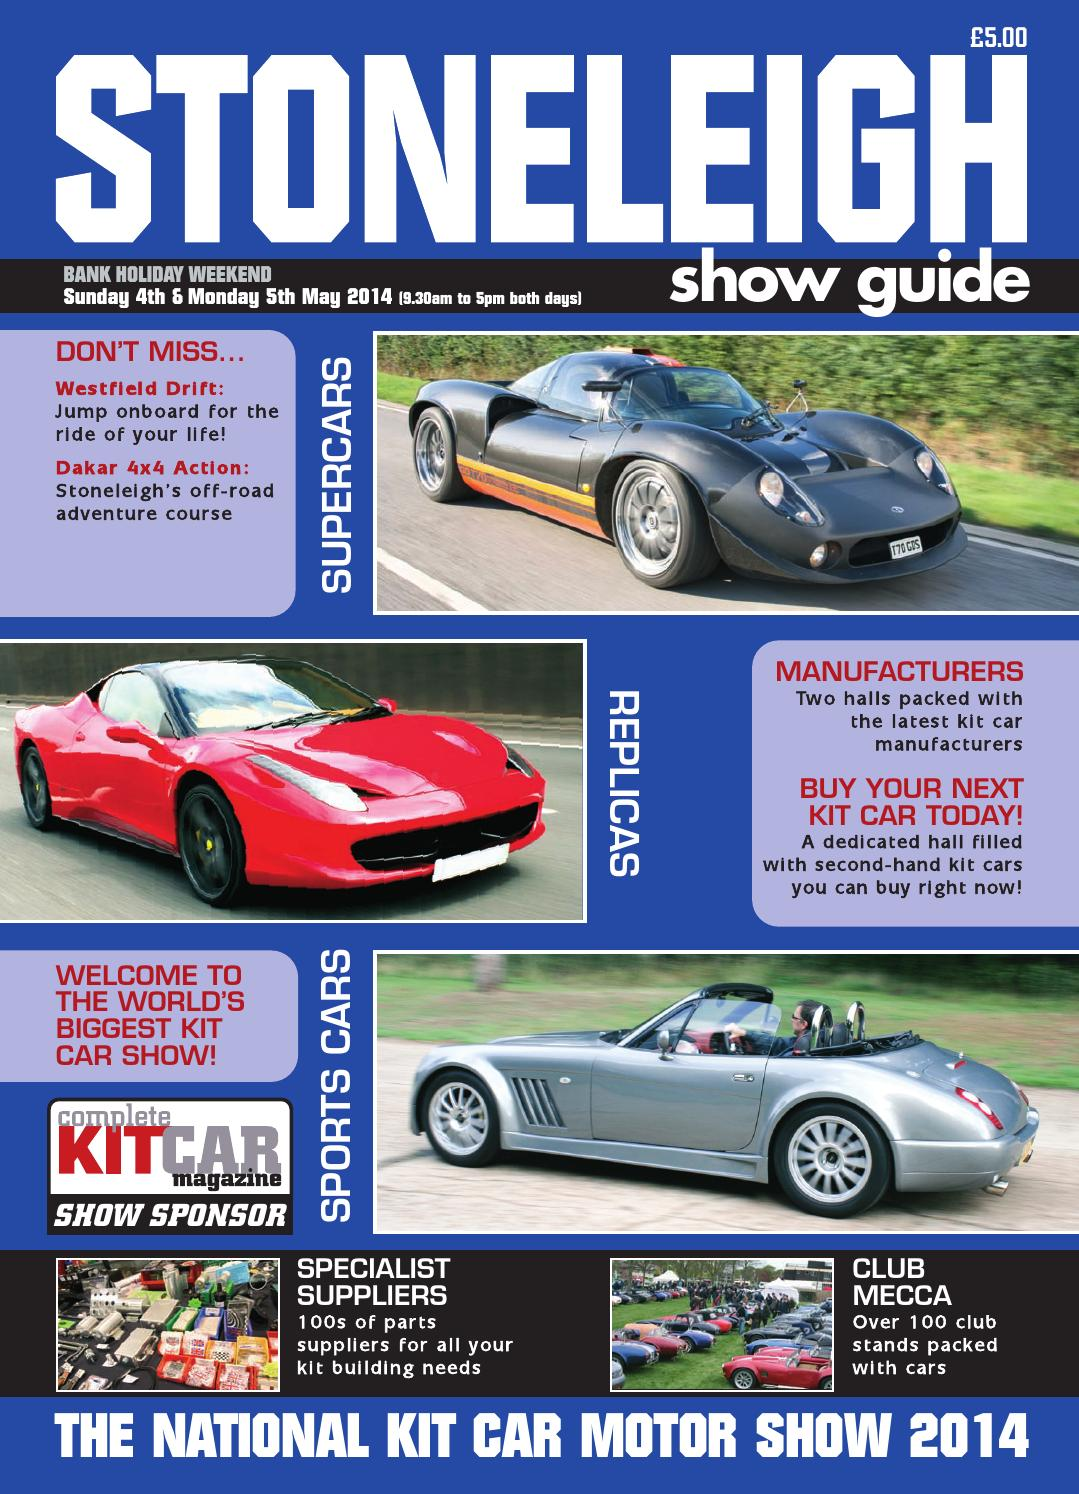 Stoneleigh National Kit Car Show Guide By Panda Creative Ltd - Sports cars manufacturers